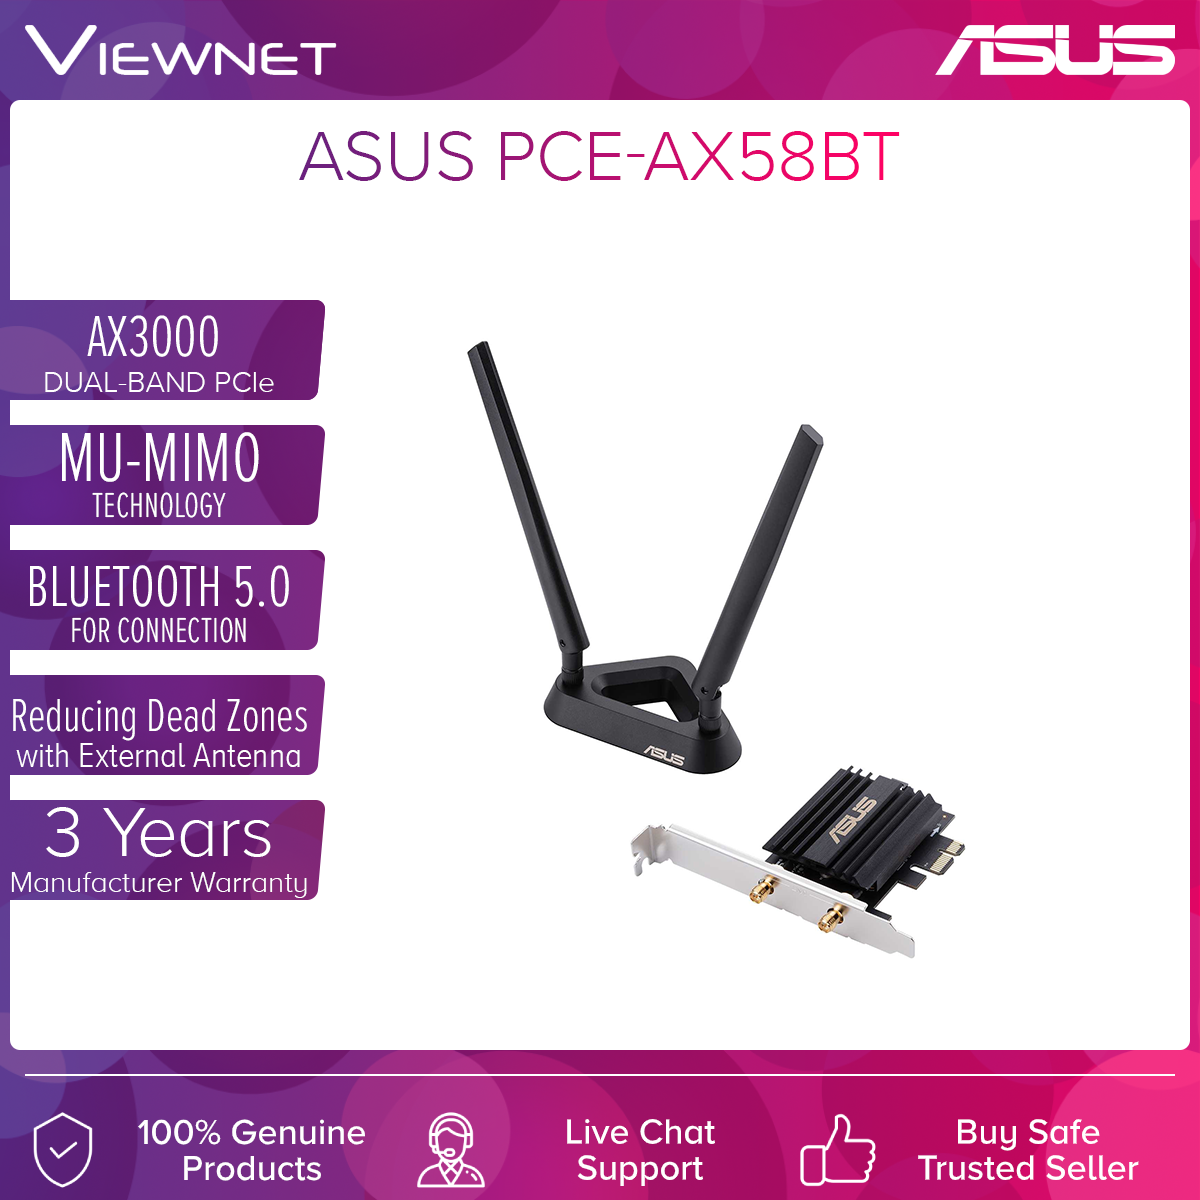 Asus AX3000 Dual Band PCI-E WiFi 6 (802.11ax) Adapter (PCE-AX58BT), 2 external antennas. Supporting 160MHz, Bluetooth 5.0, WPA3 network security, OFDMA, MU-MIMO